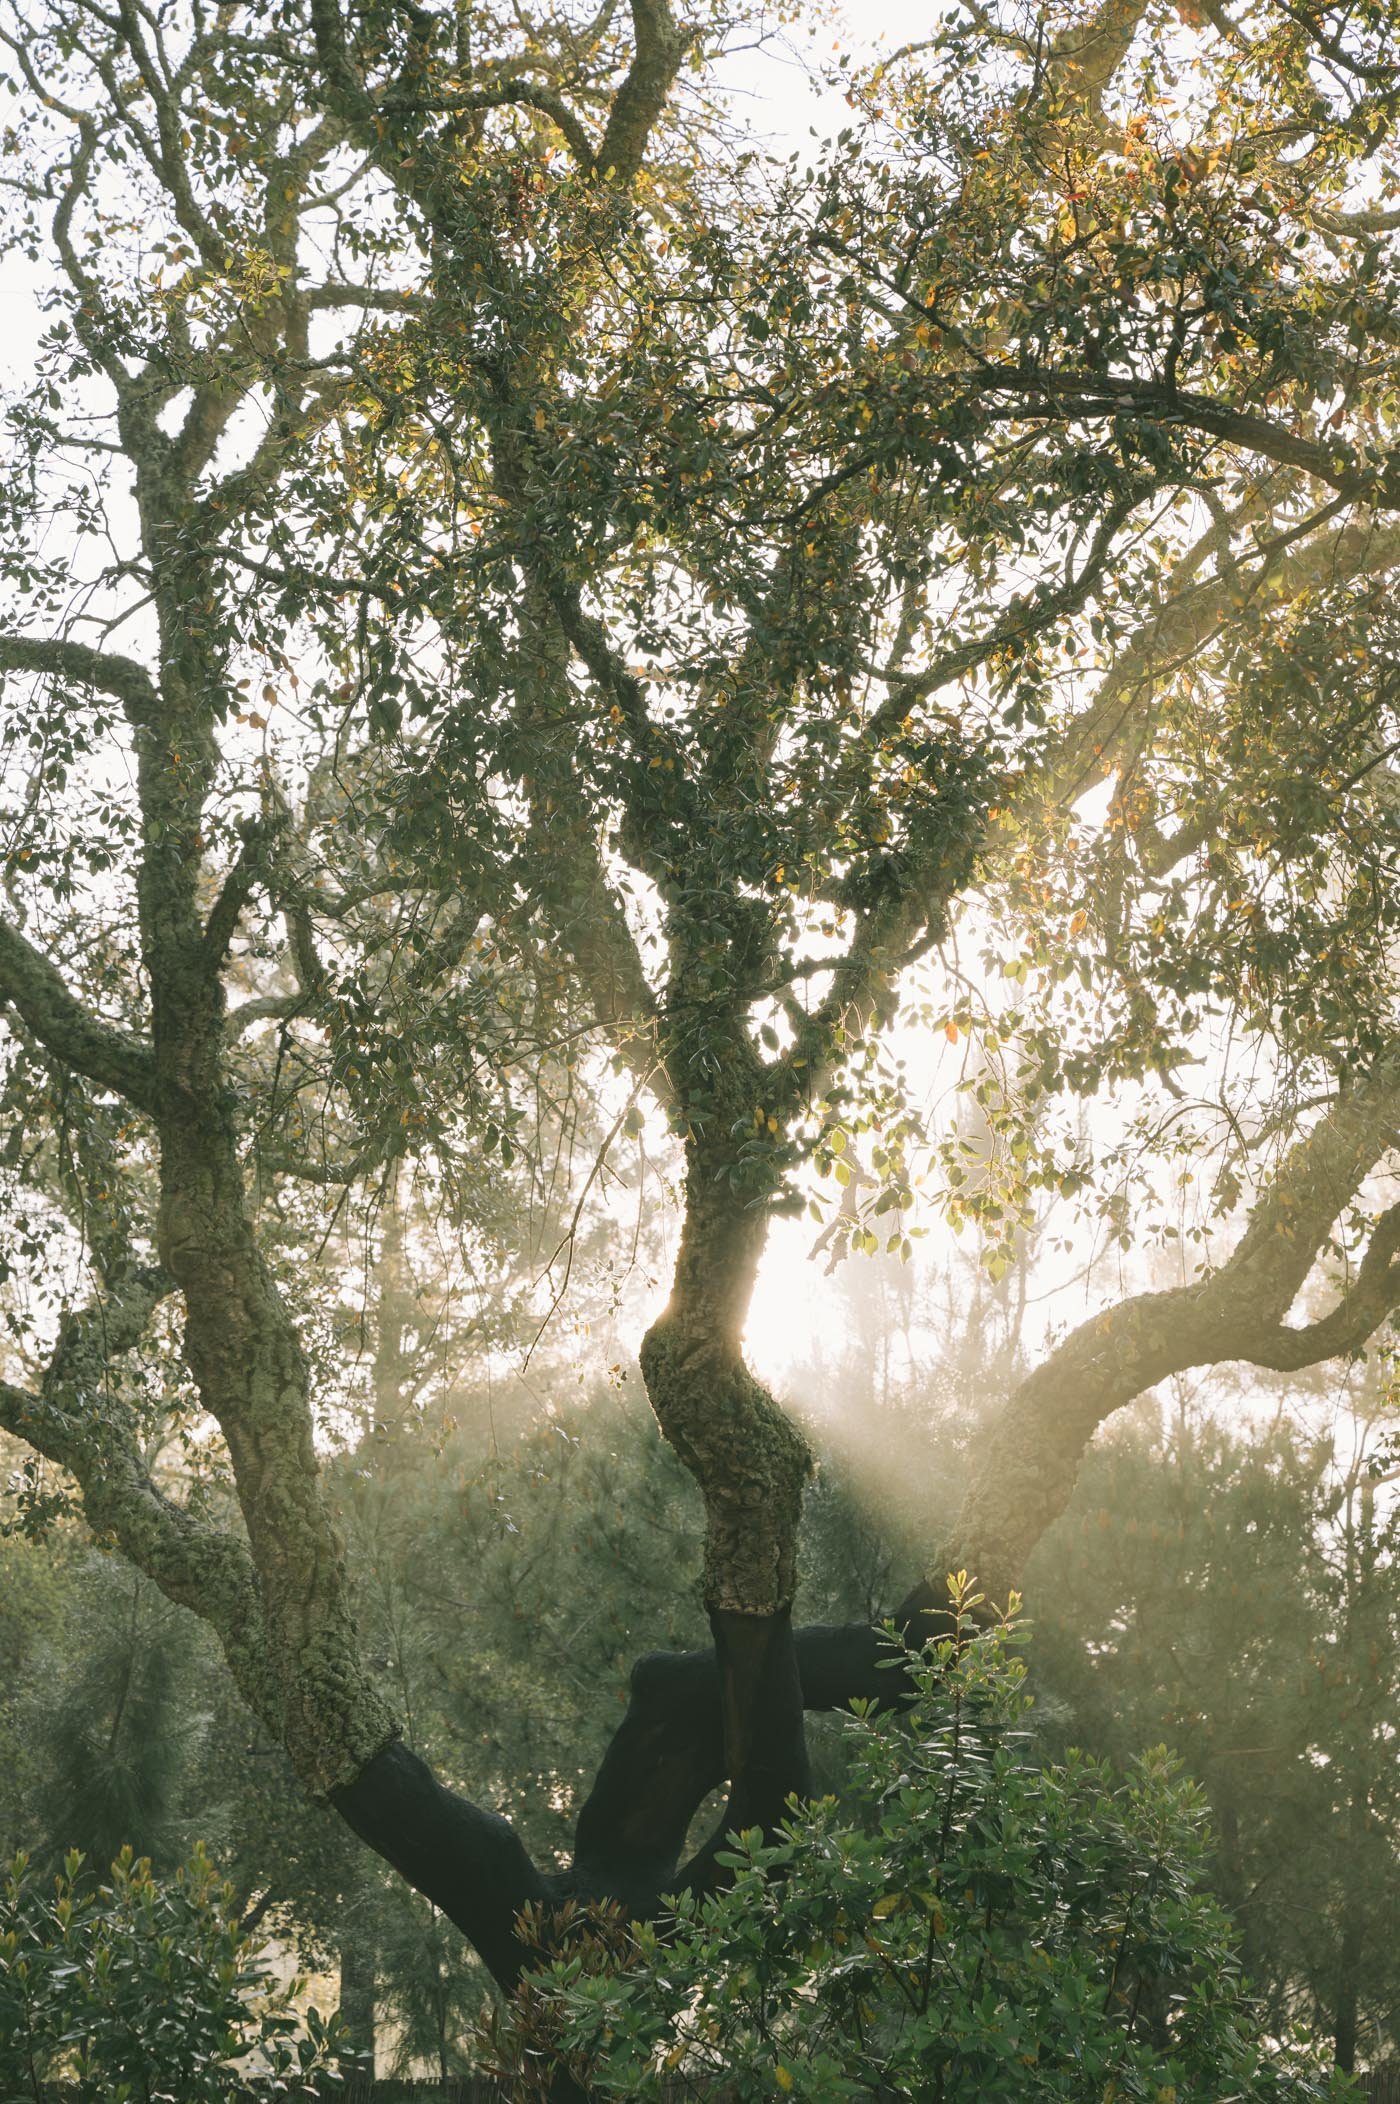 Rays of sun shine through a crooked old tree in the Alentejo region of Portugal